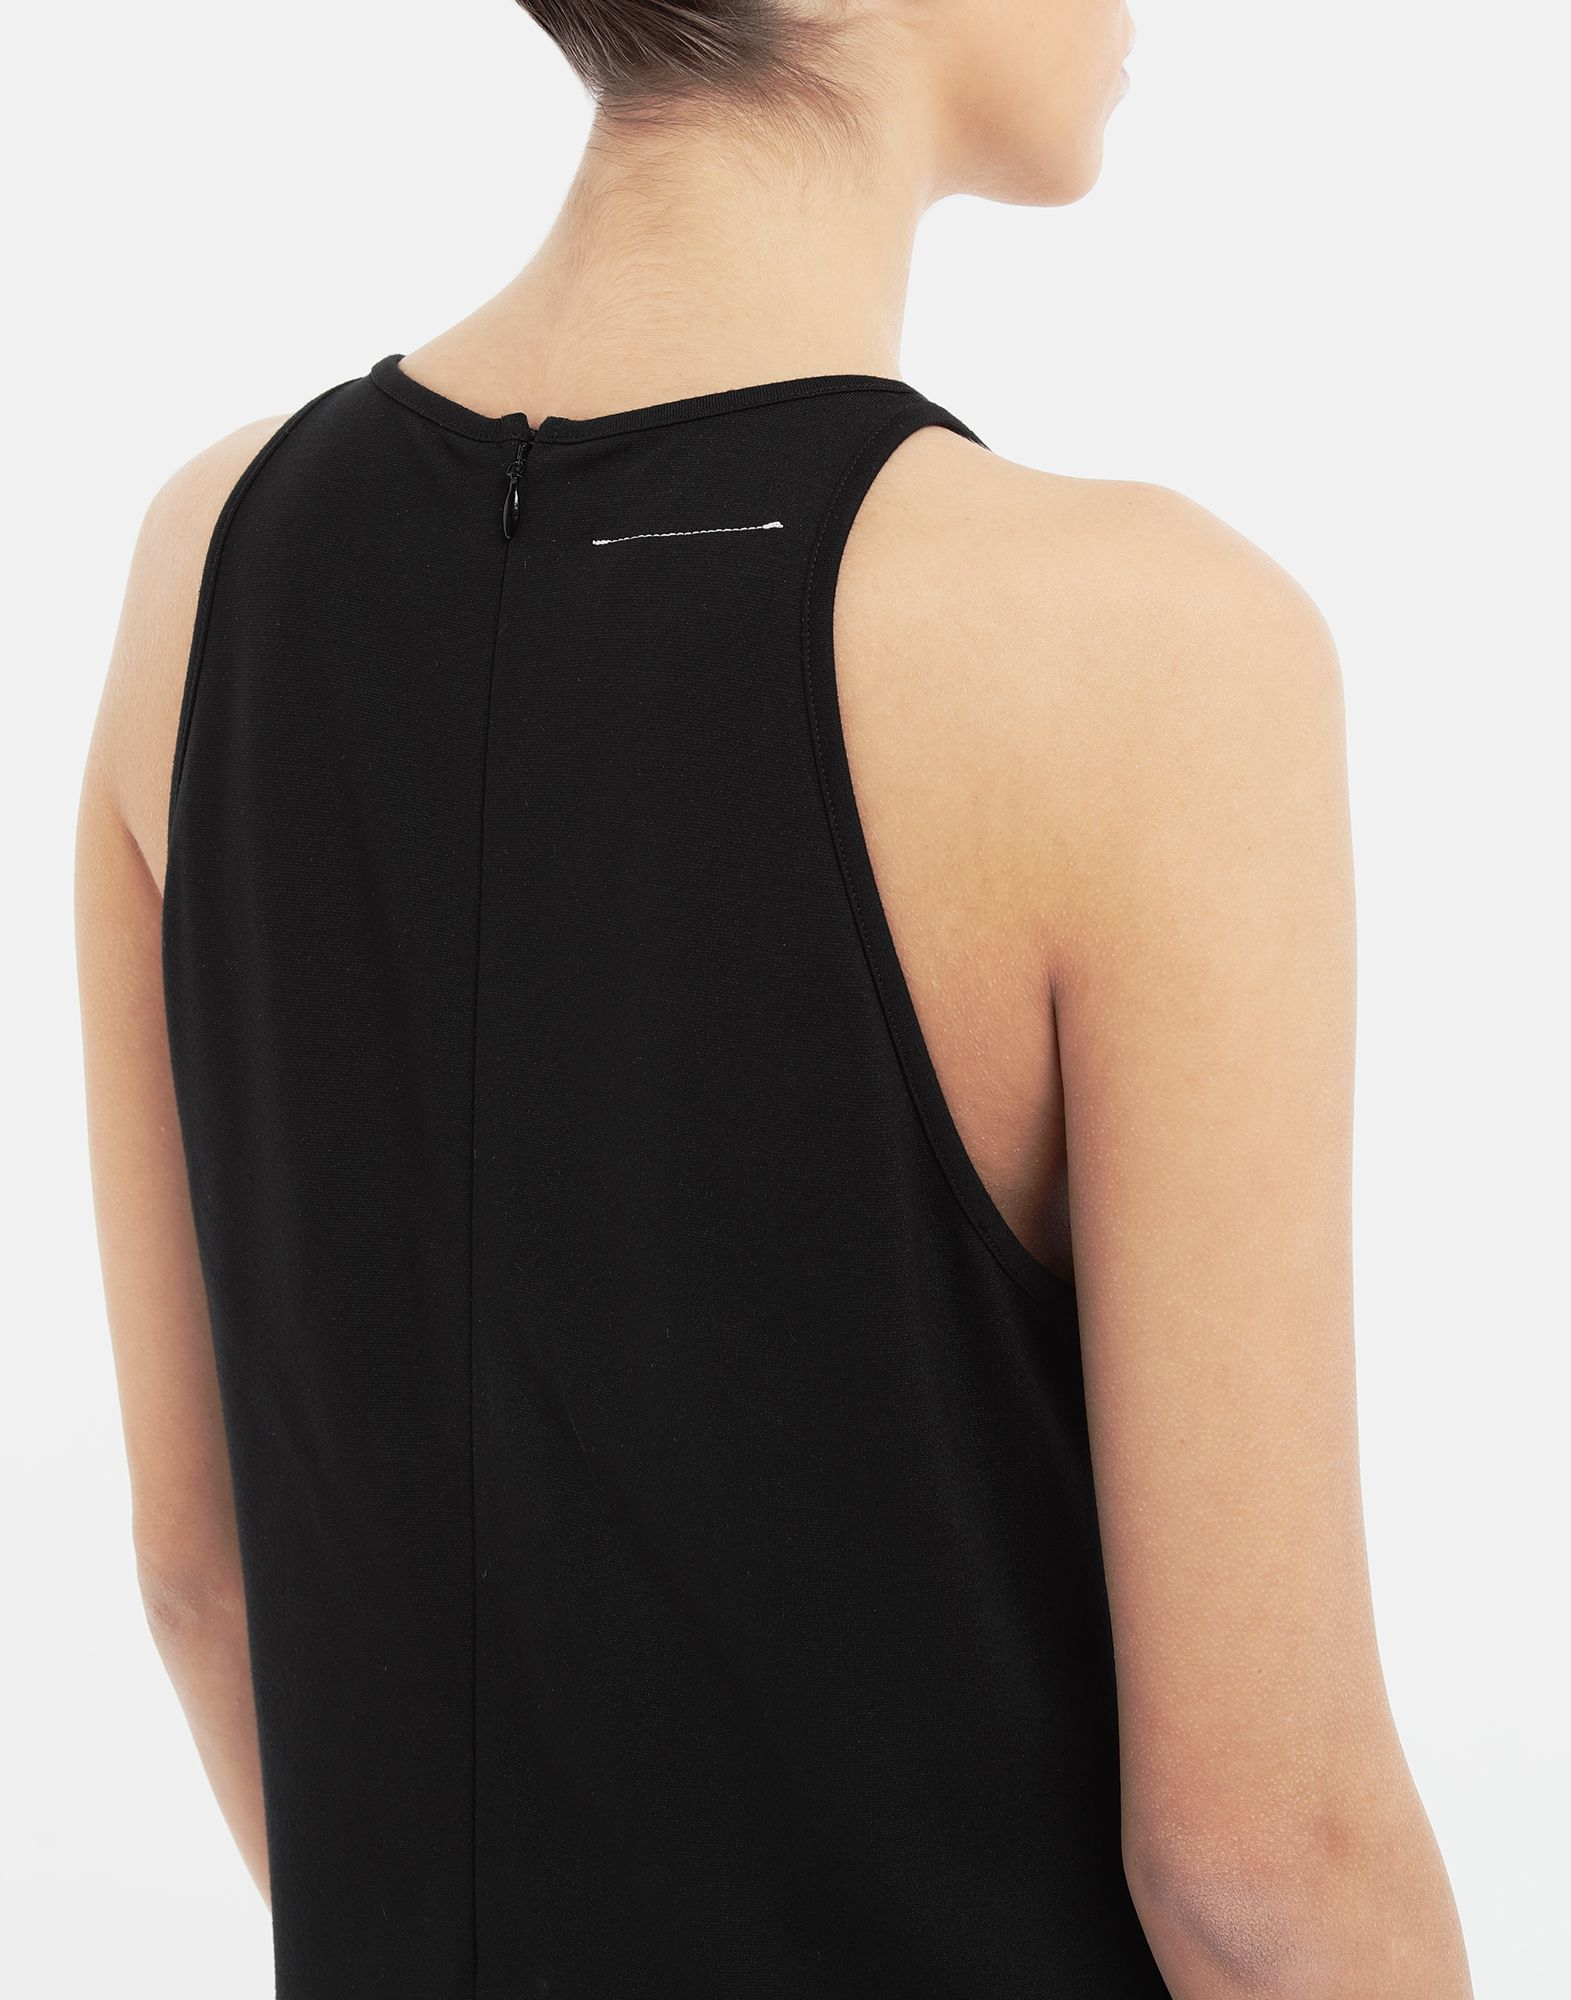 MM6 MAISON MARGIELA Two-part dress Dress Woman b